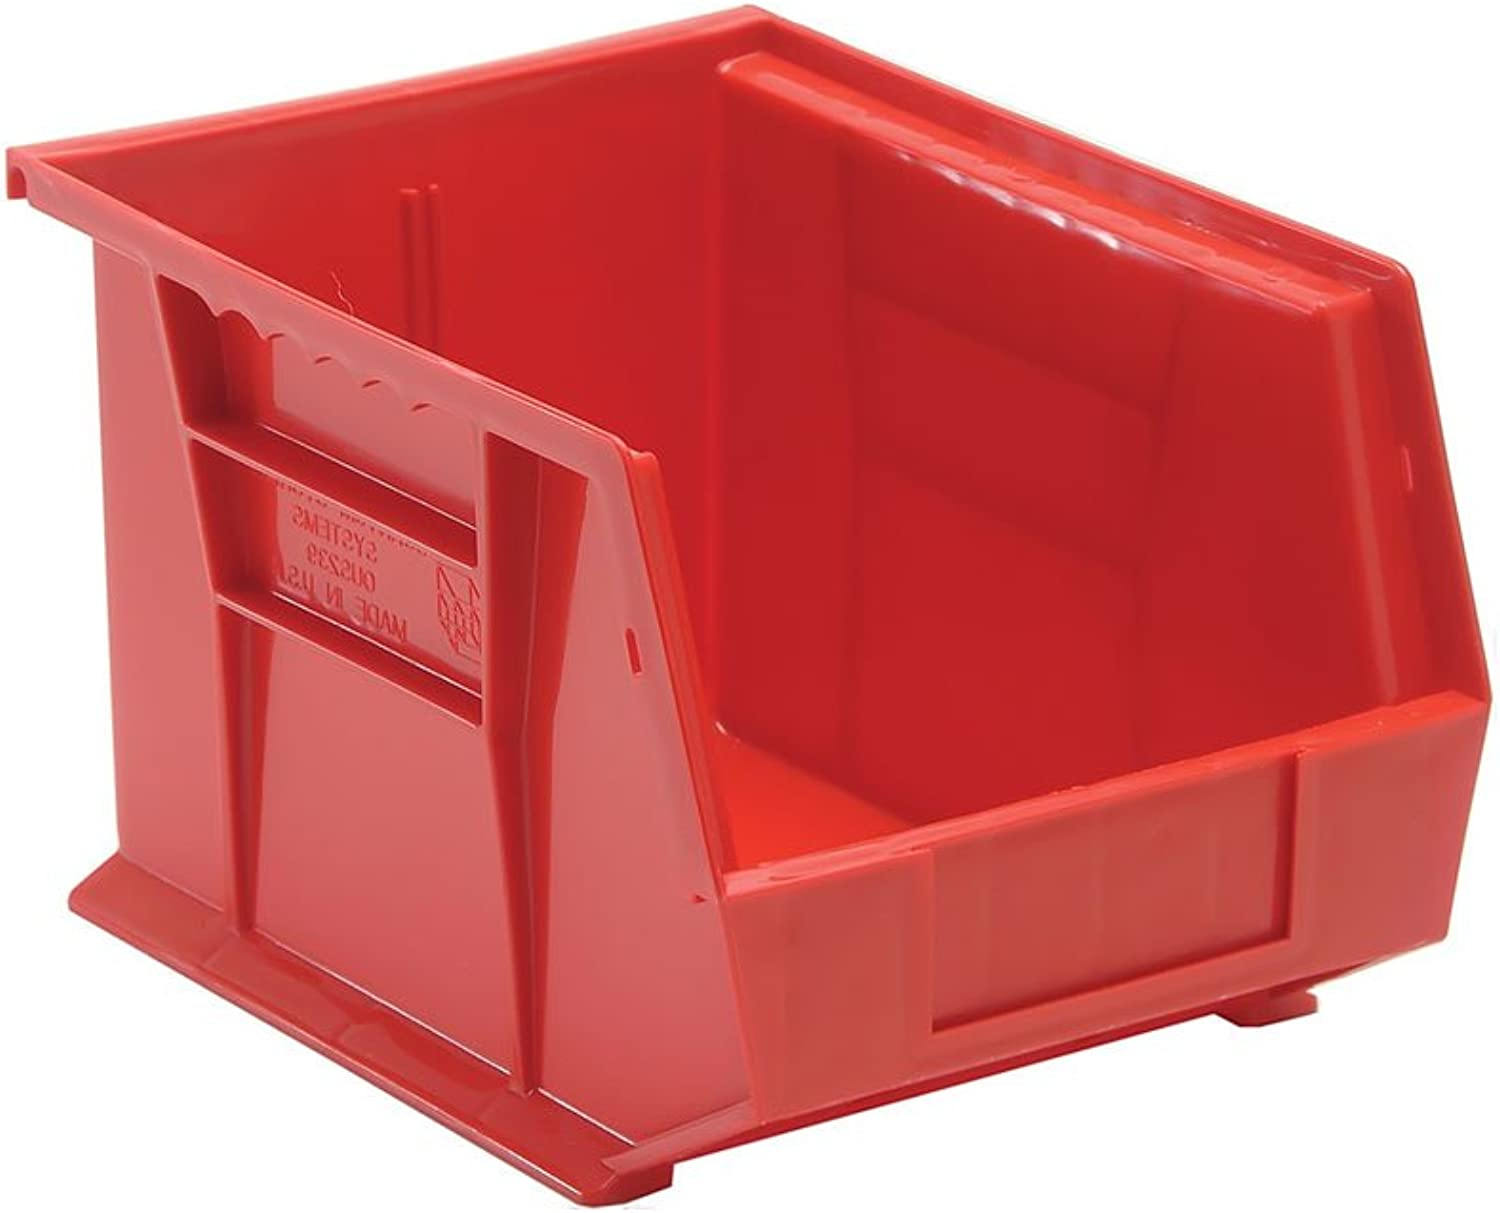 Quantum Storage Systems Ultra Stack And Hang Bin 10-3 4 Lx 8-1 4 Wx 7 H - Red Pack Of 6